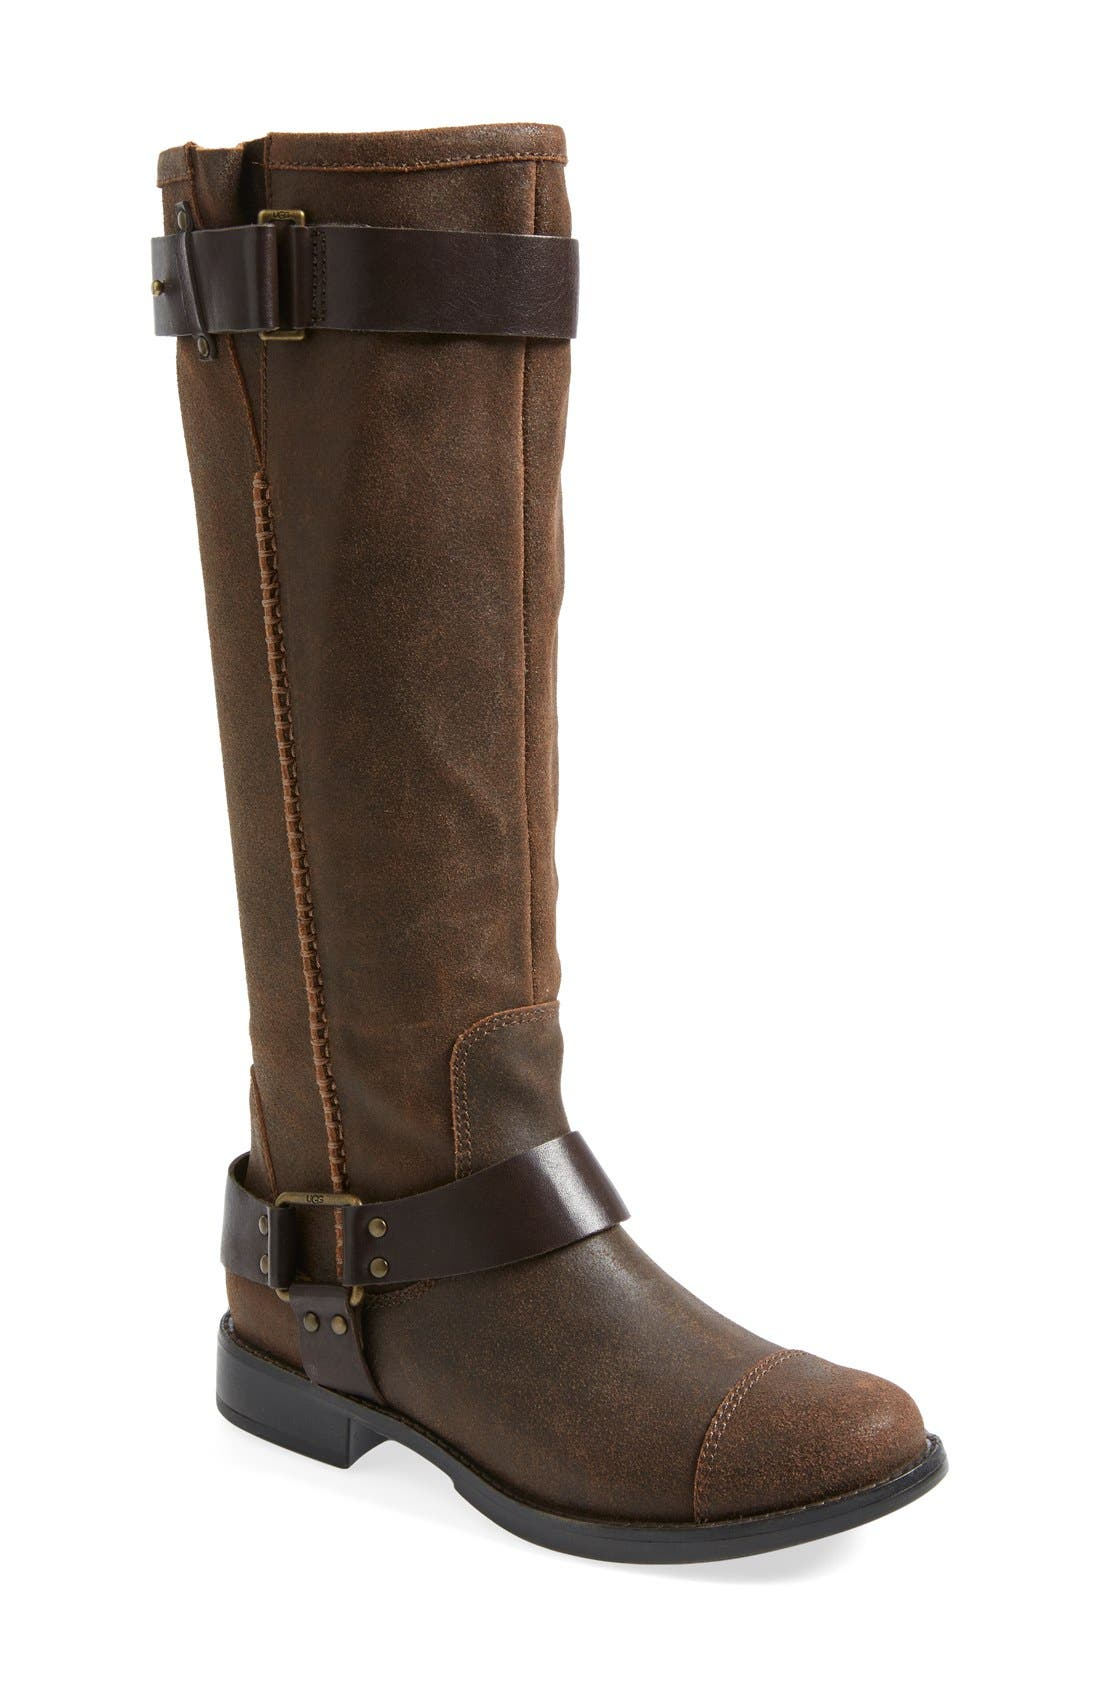 Main Image - UGG® Australia 'Dree' Suede Harness Boot (Women)